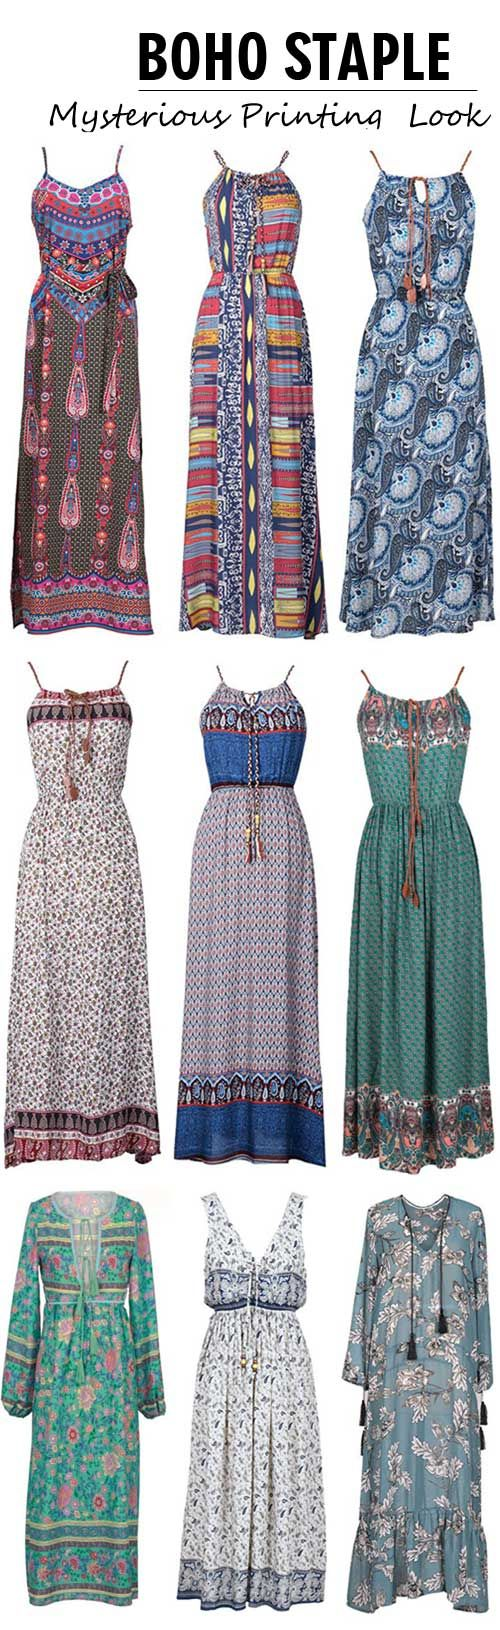 Even if you're not huge on bohemian, you'll love these dresses. Designed in a must-have print these maxi dresses are oh-so boho into your summer wardrobe.Check out amazing pieces that suit you at Cupshe.com !